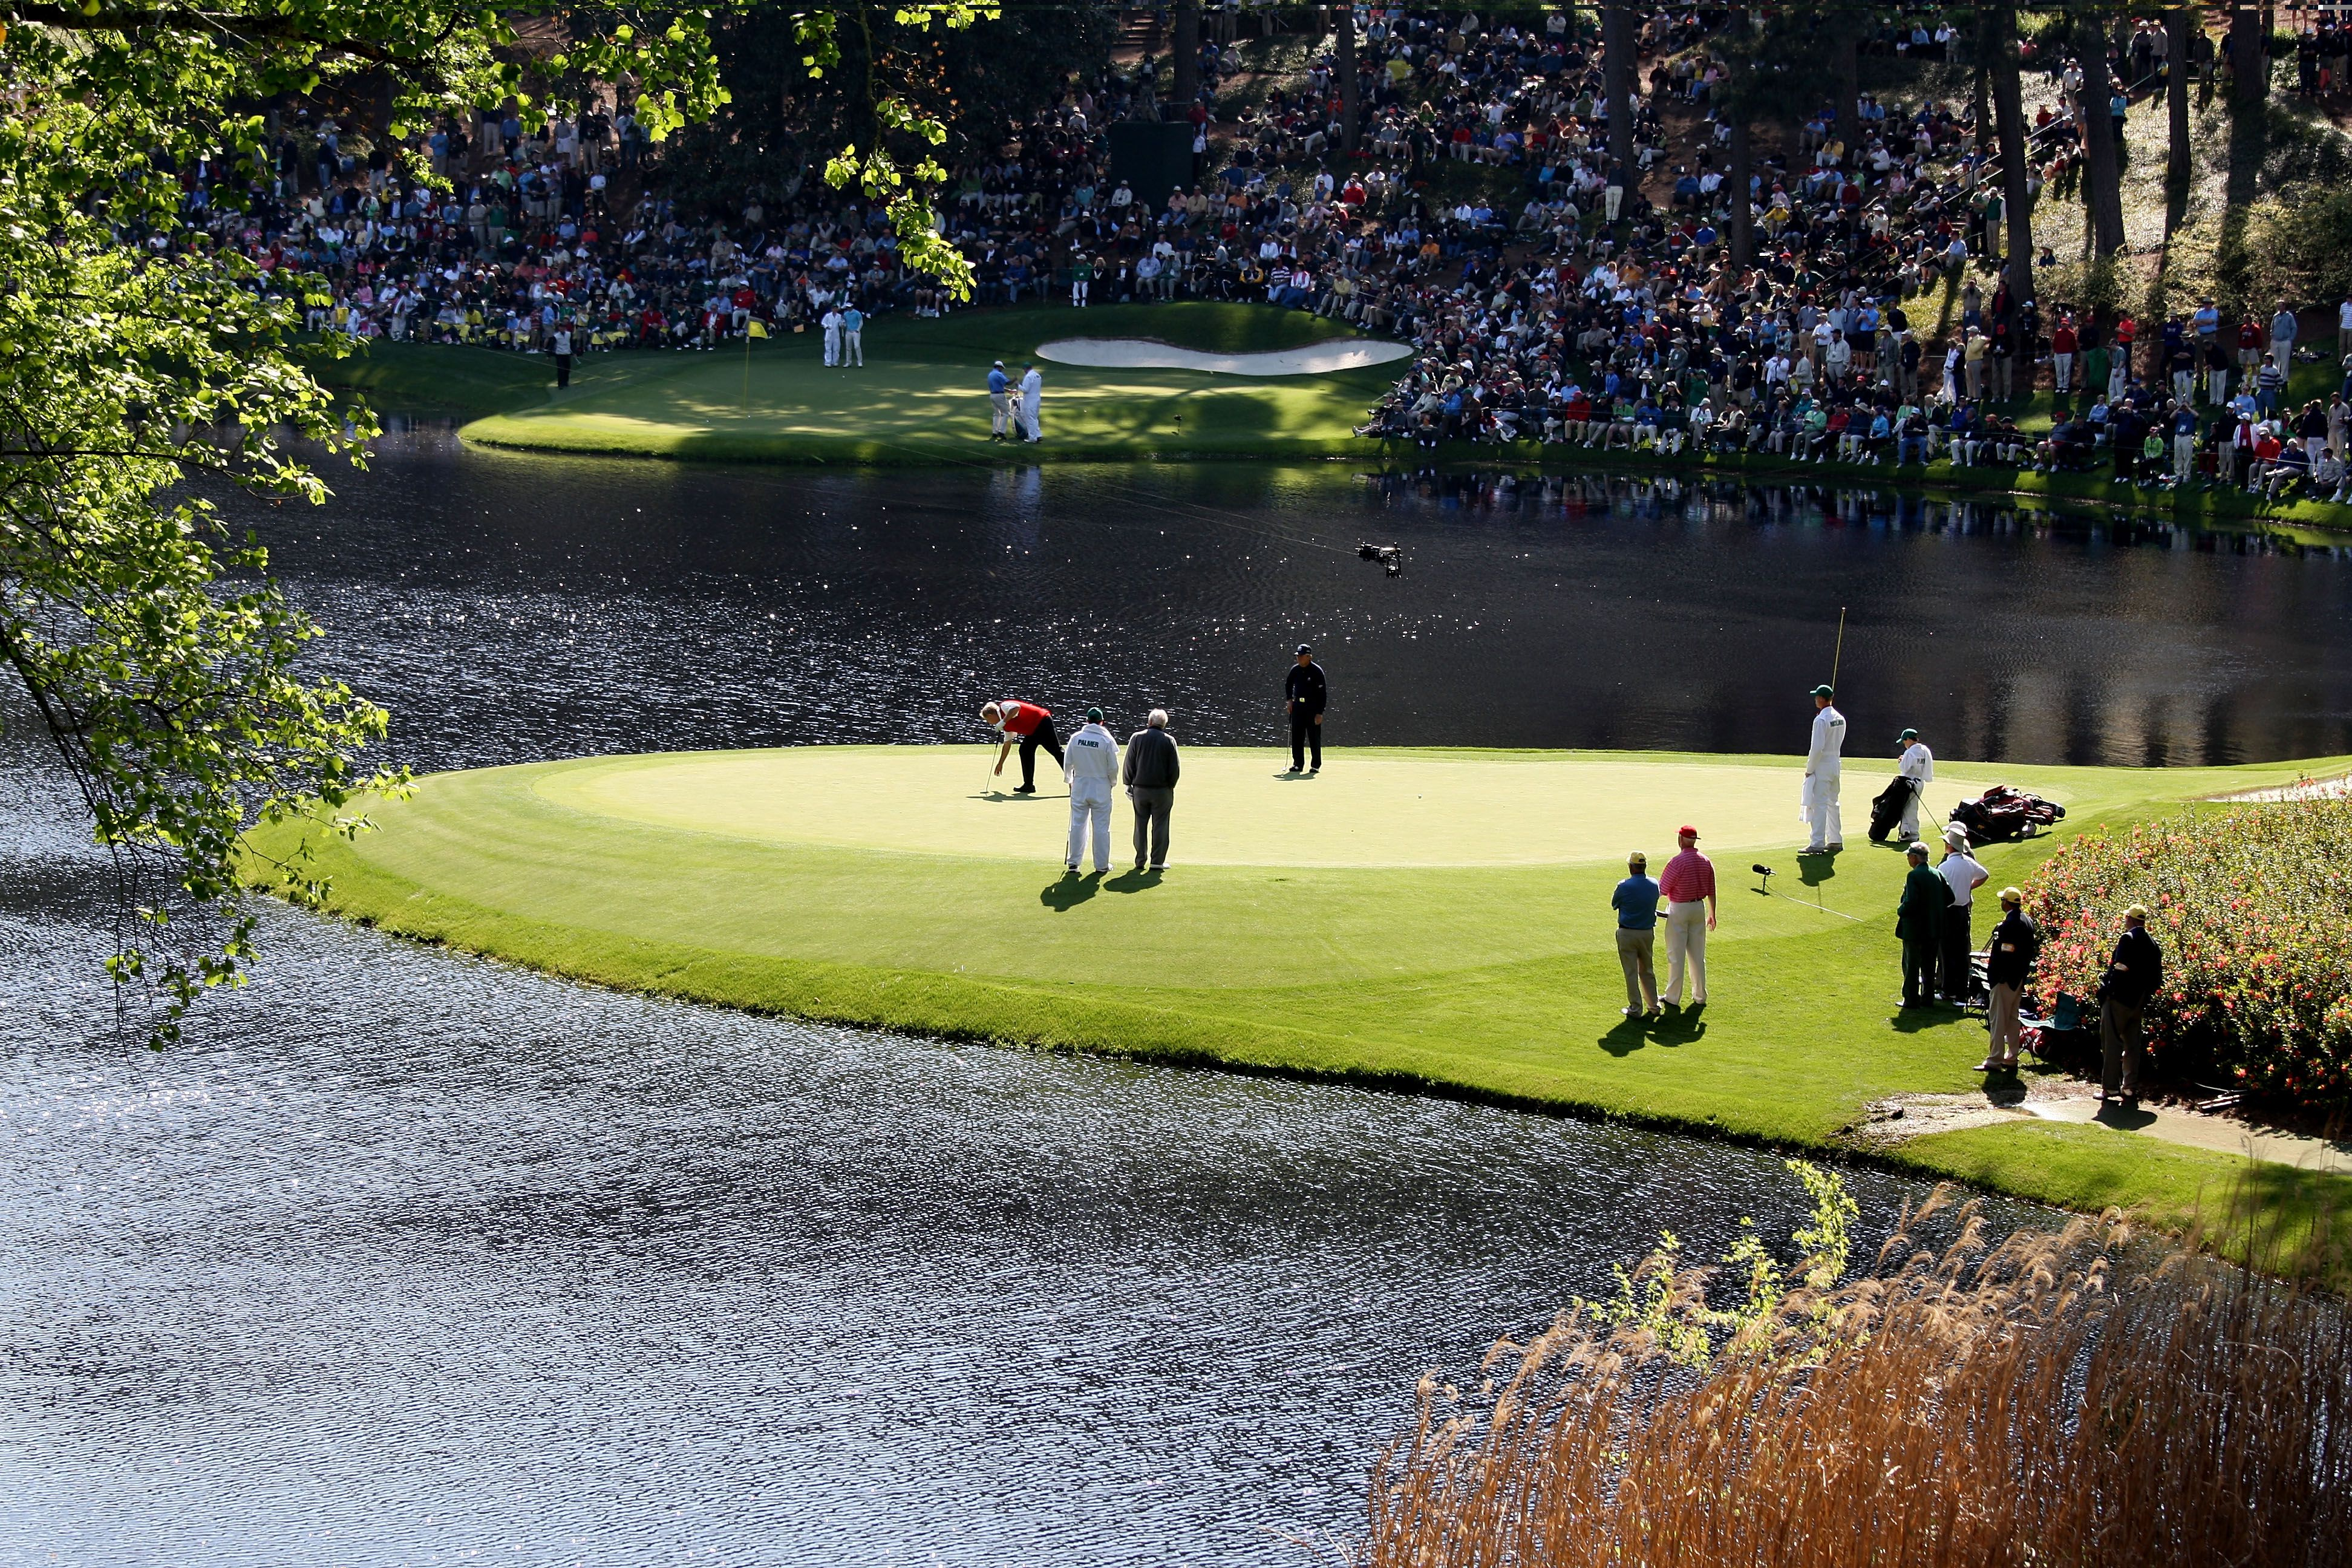 Gary Player, Arnold Palmer and Jack Nicklaus in action on the eighth green during the Par 3 Contest prior to the 2009 Masters Tournament